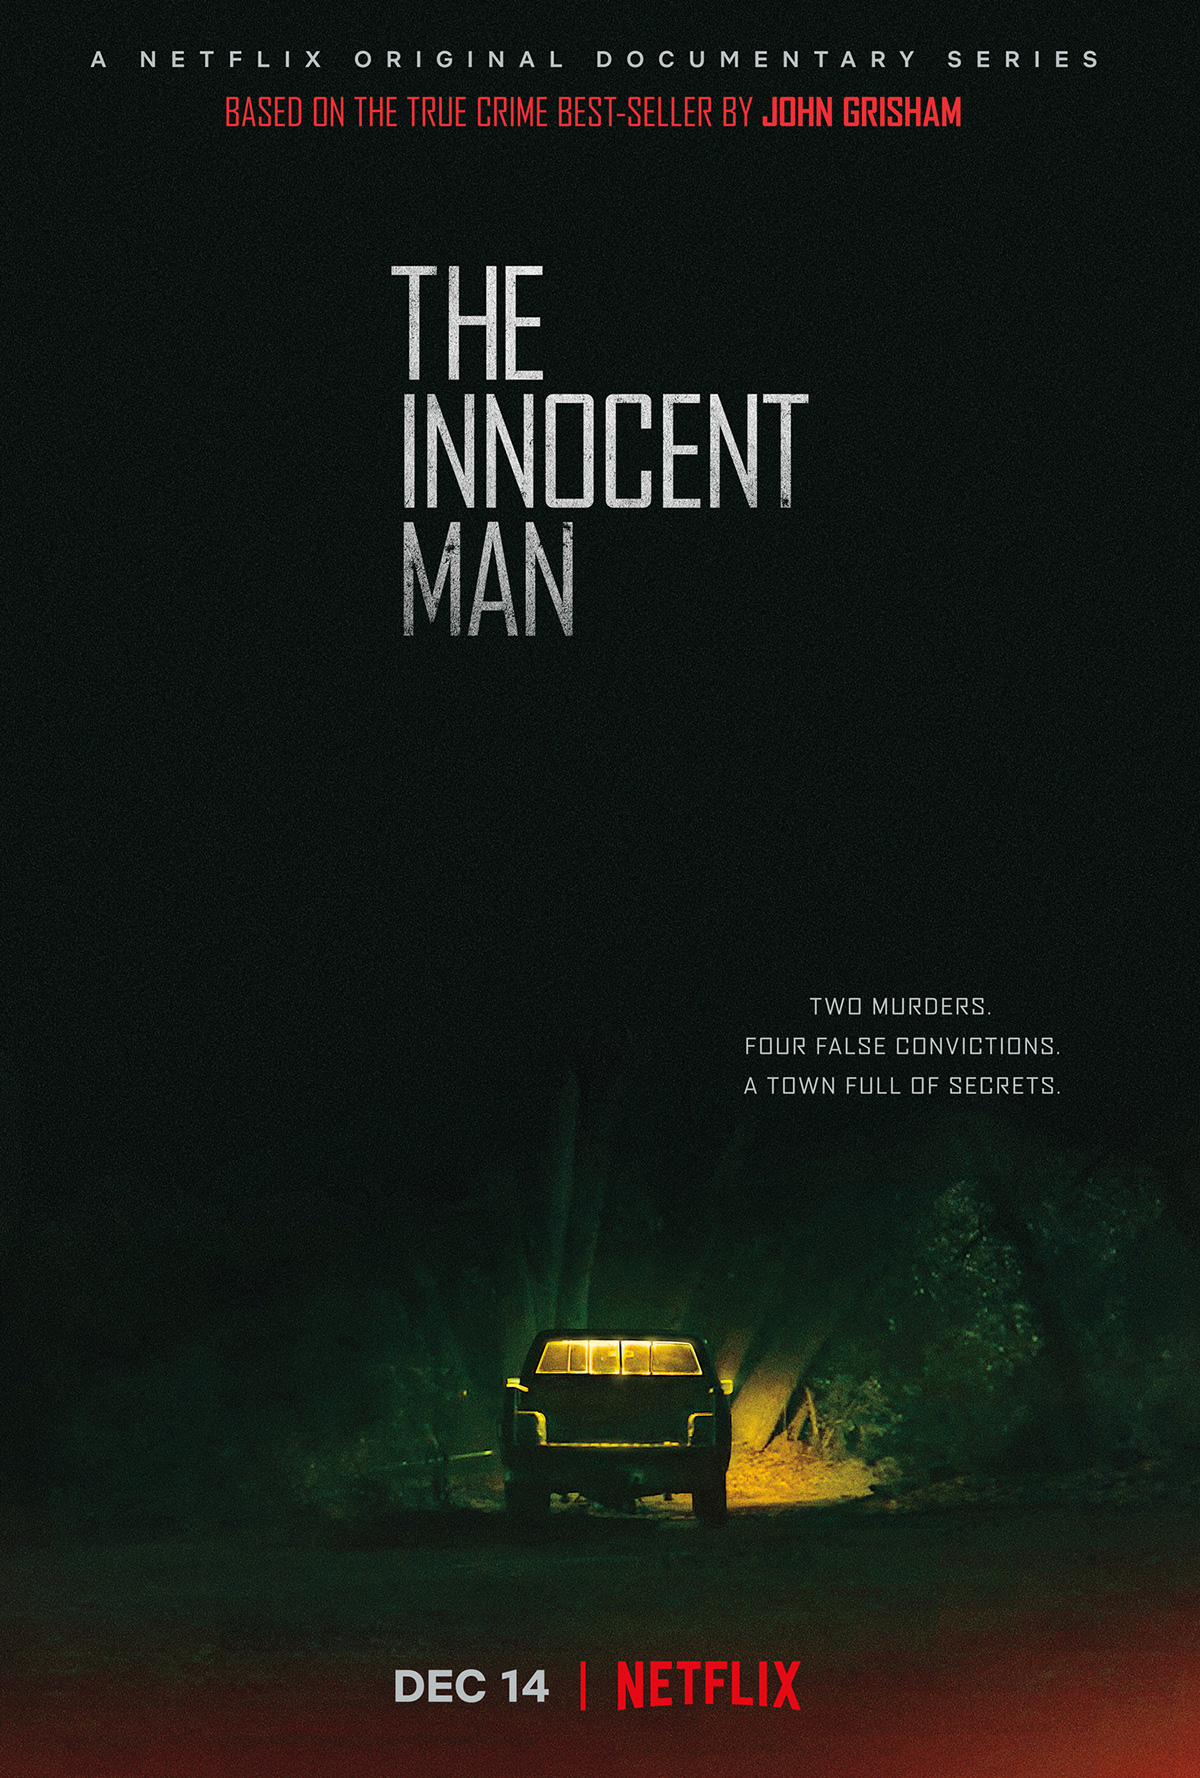 Netflix's The Innocent Man